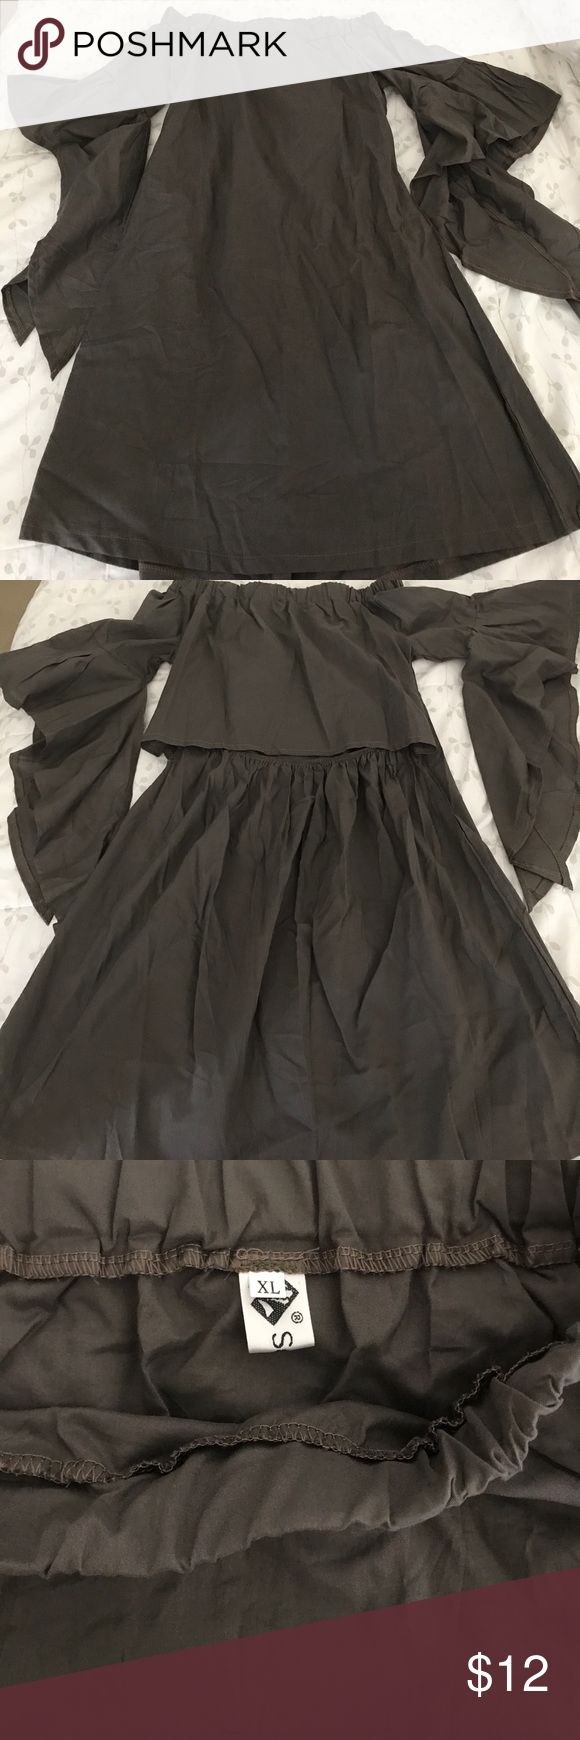 NWOT Off shoulder grey dress with flowing sleeves Dark gray off the shoulder dress with flowing sleeves size extra-large runs very small. Would fit a size 4–6. Very fun summer dress. Dresses